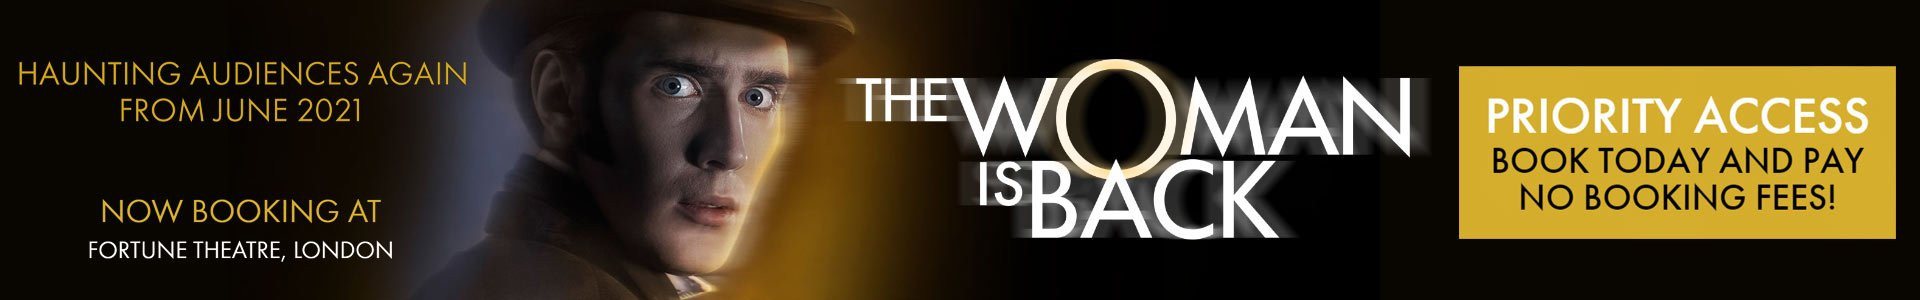 The Woman In Black Exclusive Offer